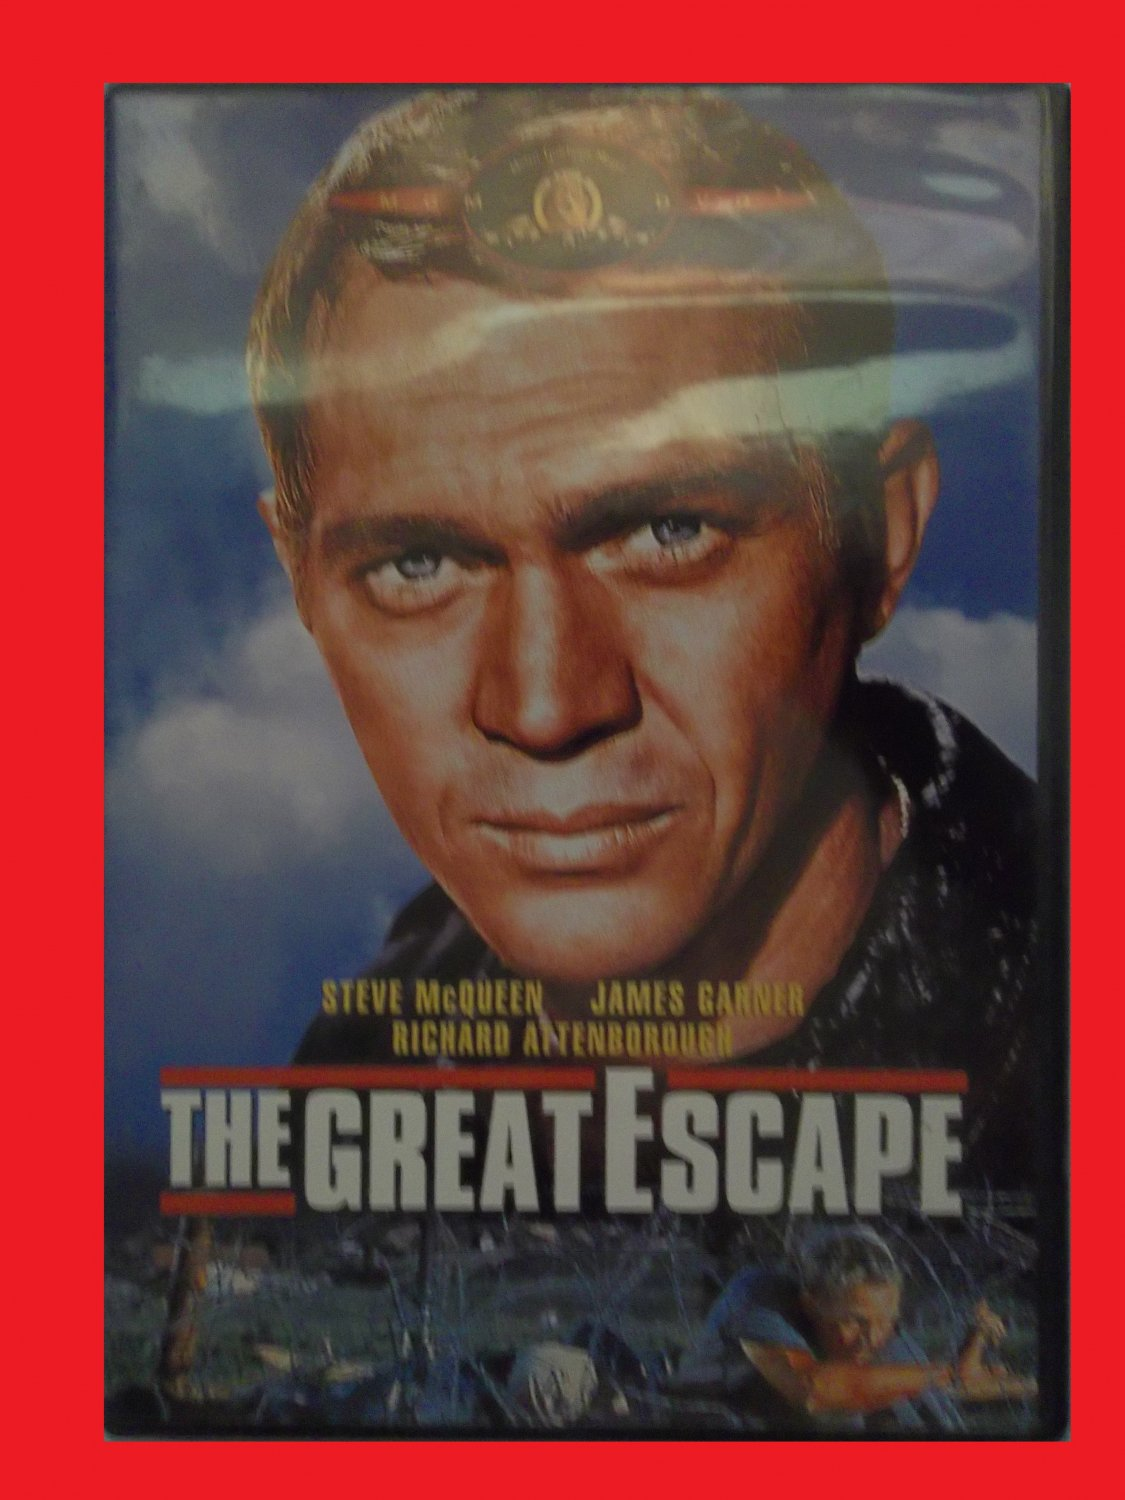 THE GREAT ESCAPE (FREE DVD & FAST SHIPPING) STEVE MCQUEEN (TRUE STORY/THRILLER/SUSPENSE)